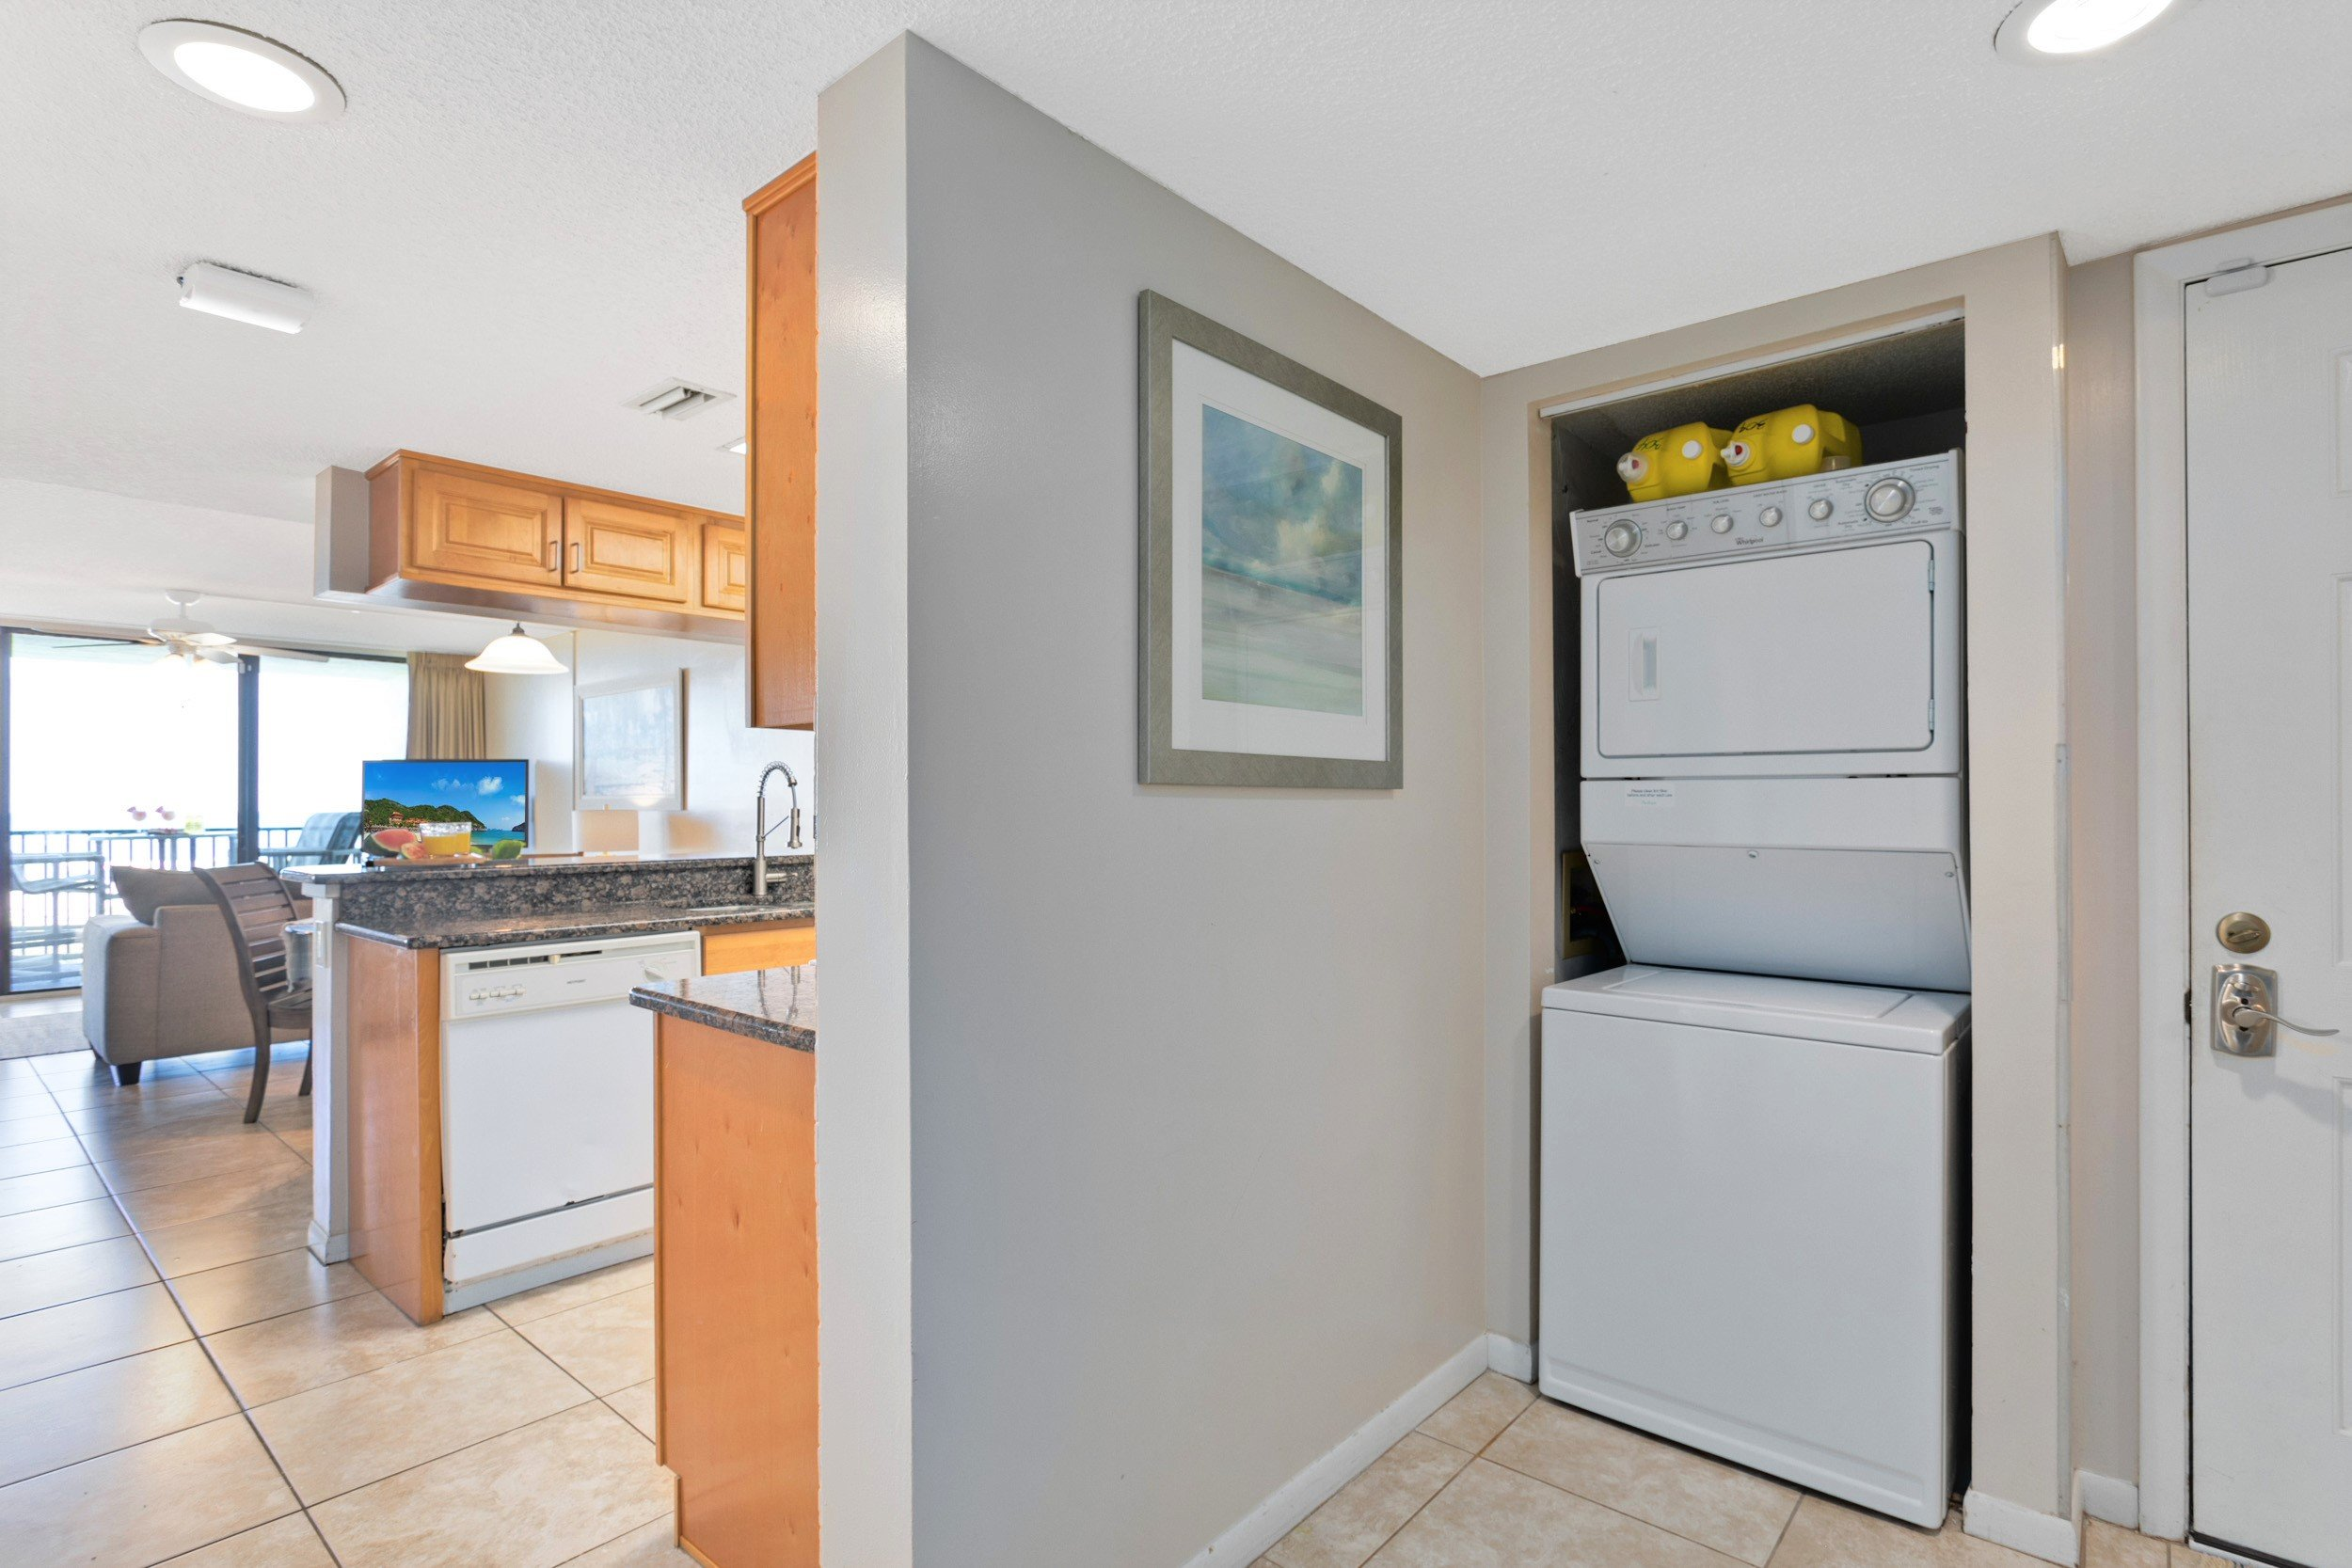 Washer and dryer conveniently located in the unit